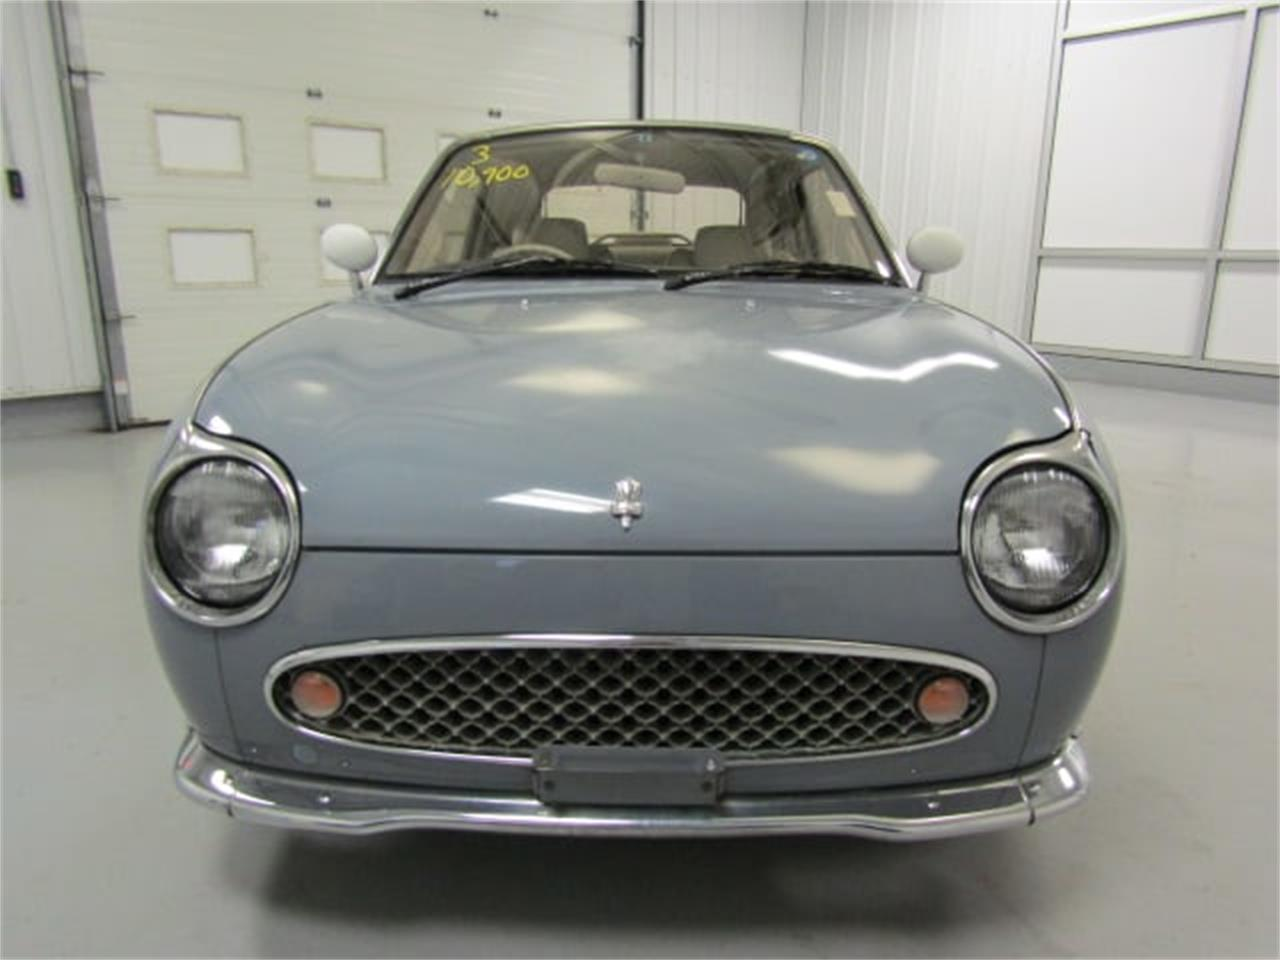 Large Picture of 1991 Nissan Figaro - $10,900.00 Offered by Duncan Imports & Classic Cars - JZ1Z